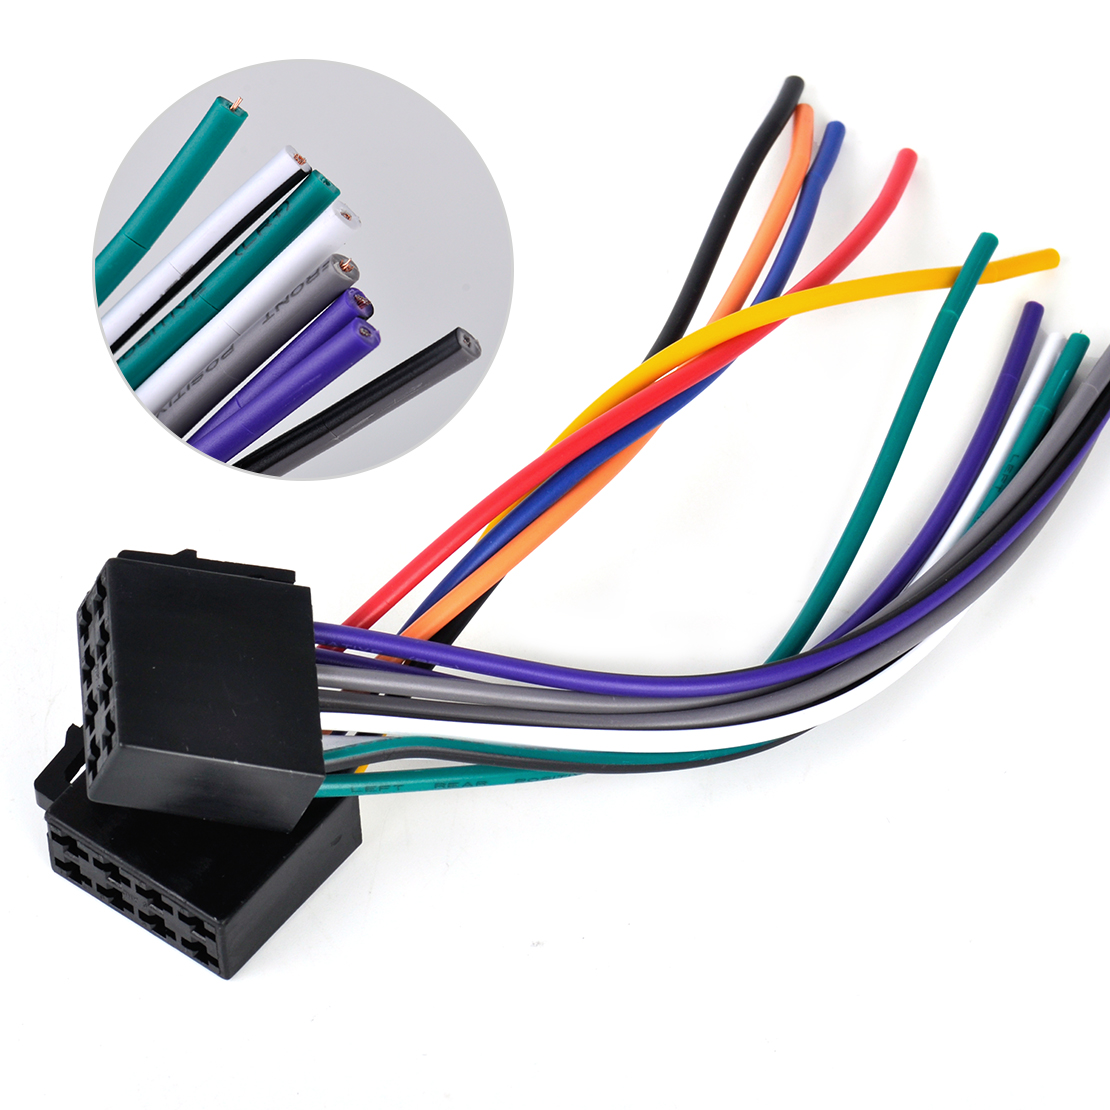 1 universal car stereo radio female iso plug adapter wiring harness universal wiring harness connector at readyjetset.co